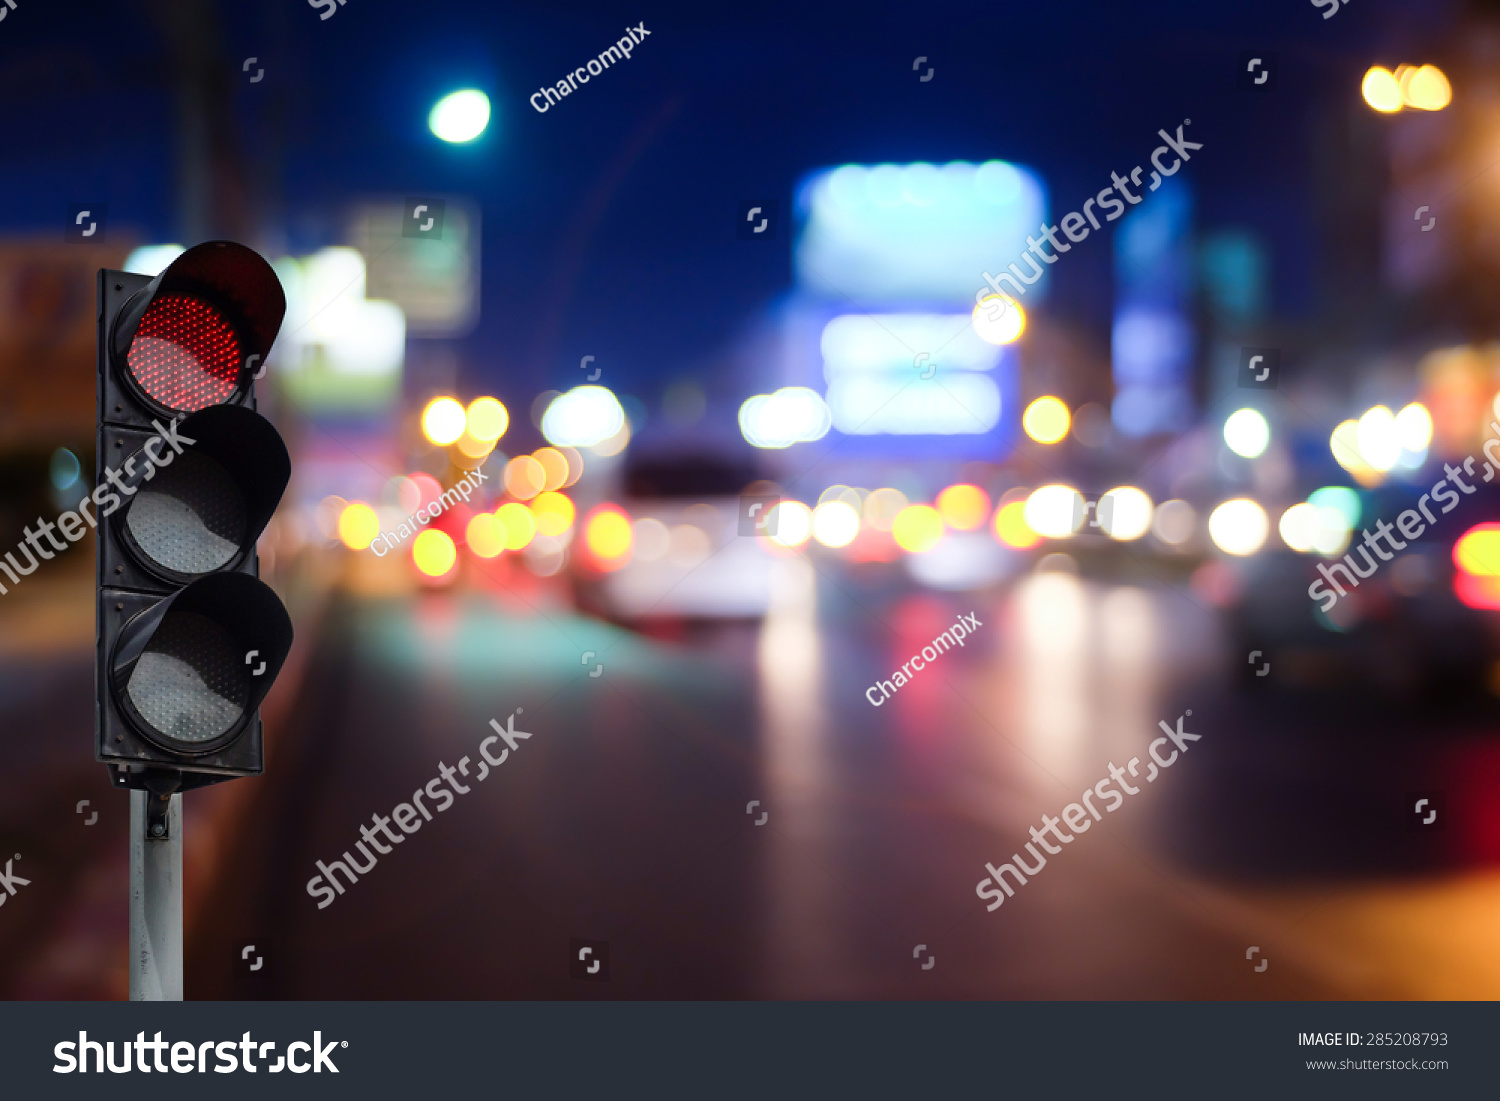 Red Traffic Light On Road Night Stock Photo 285208793 - Shutterstock for Traffic Light On Road At Night  21ane